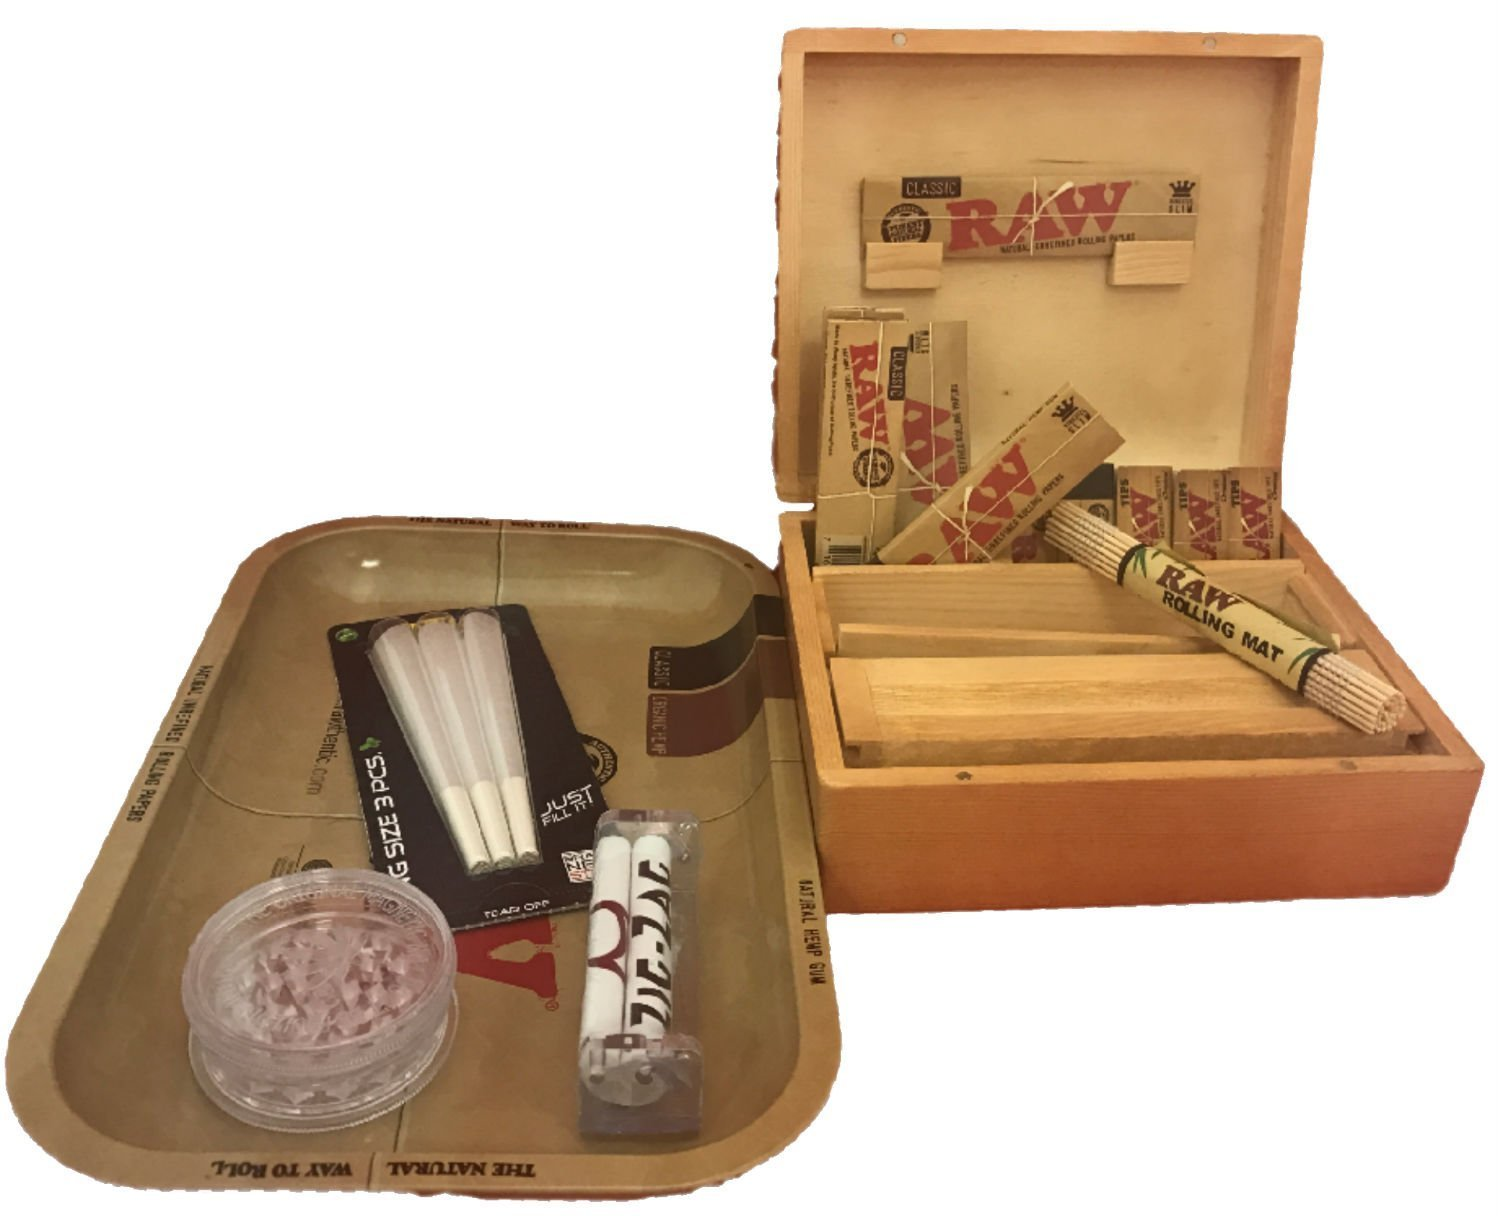 Shine GRASSLEAF Wooden Rolling Box with RAW Tray Gift Set- Includes Papers/Tips/Grinder/Rolling Machine/MAT (Large Box/Small Tray) (Large Box/Small Tray) by Shine